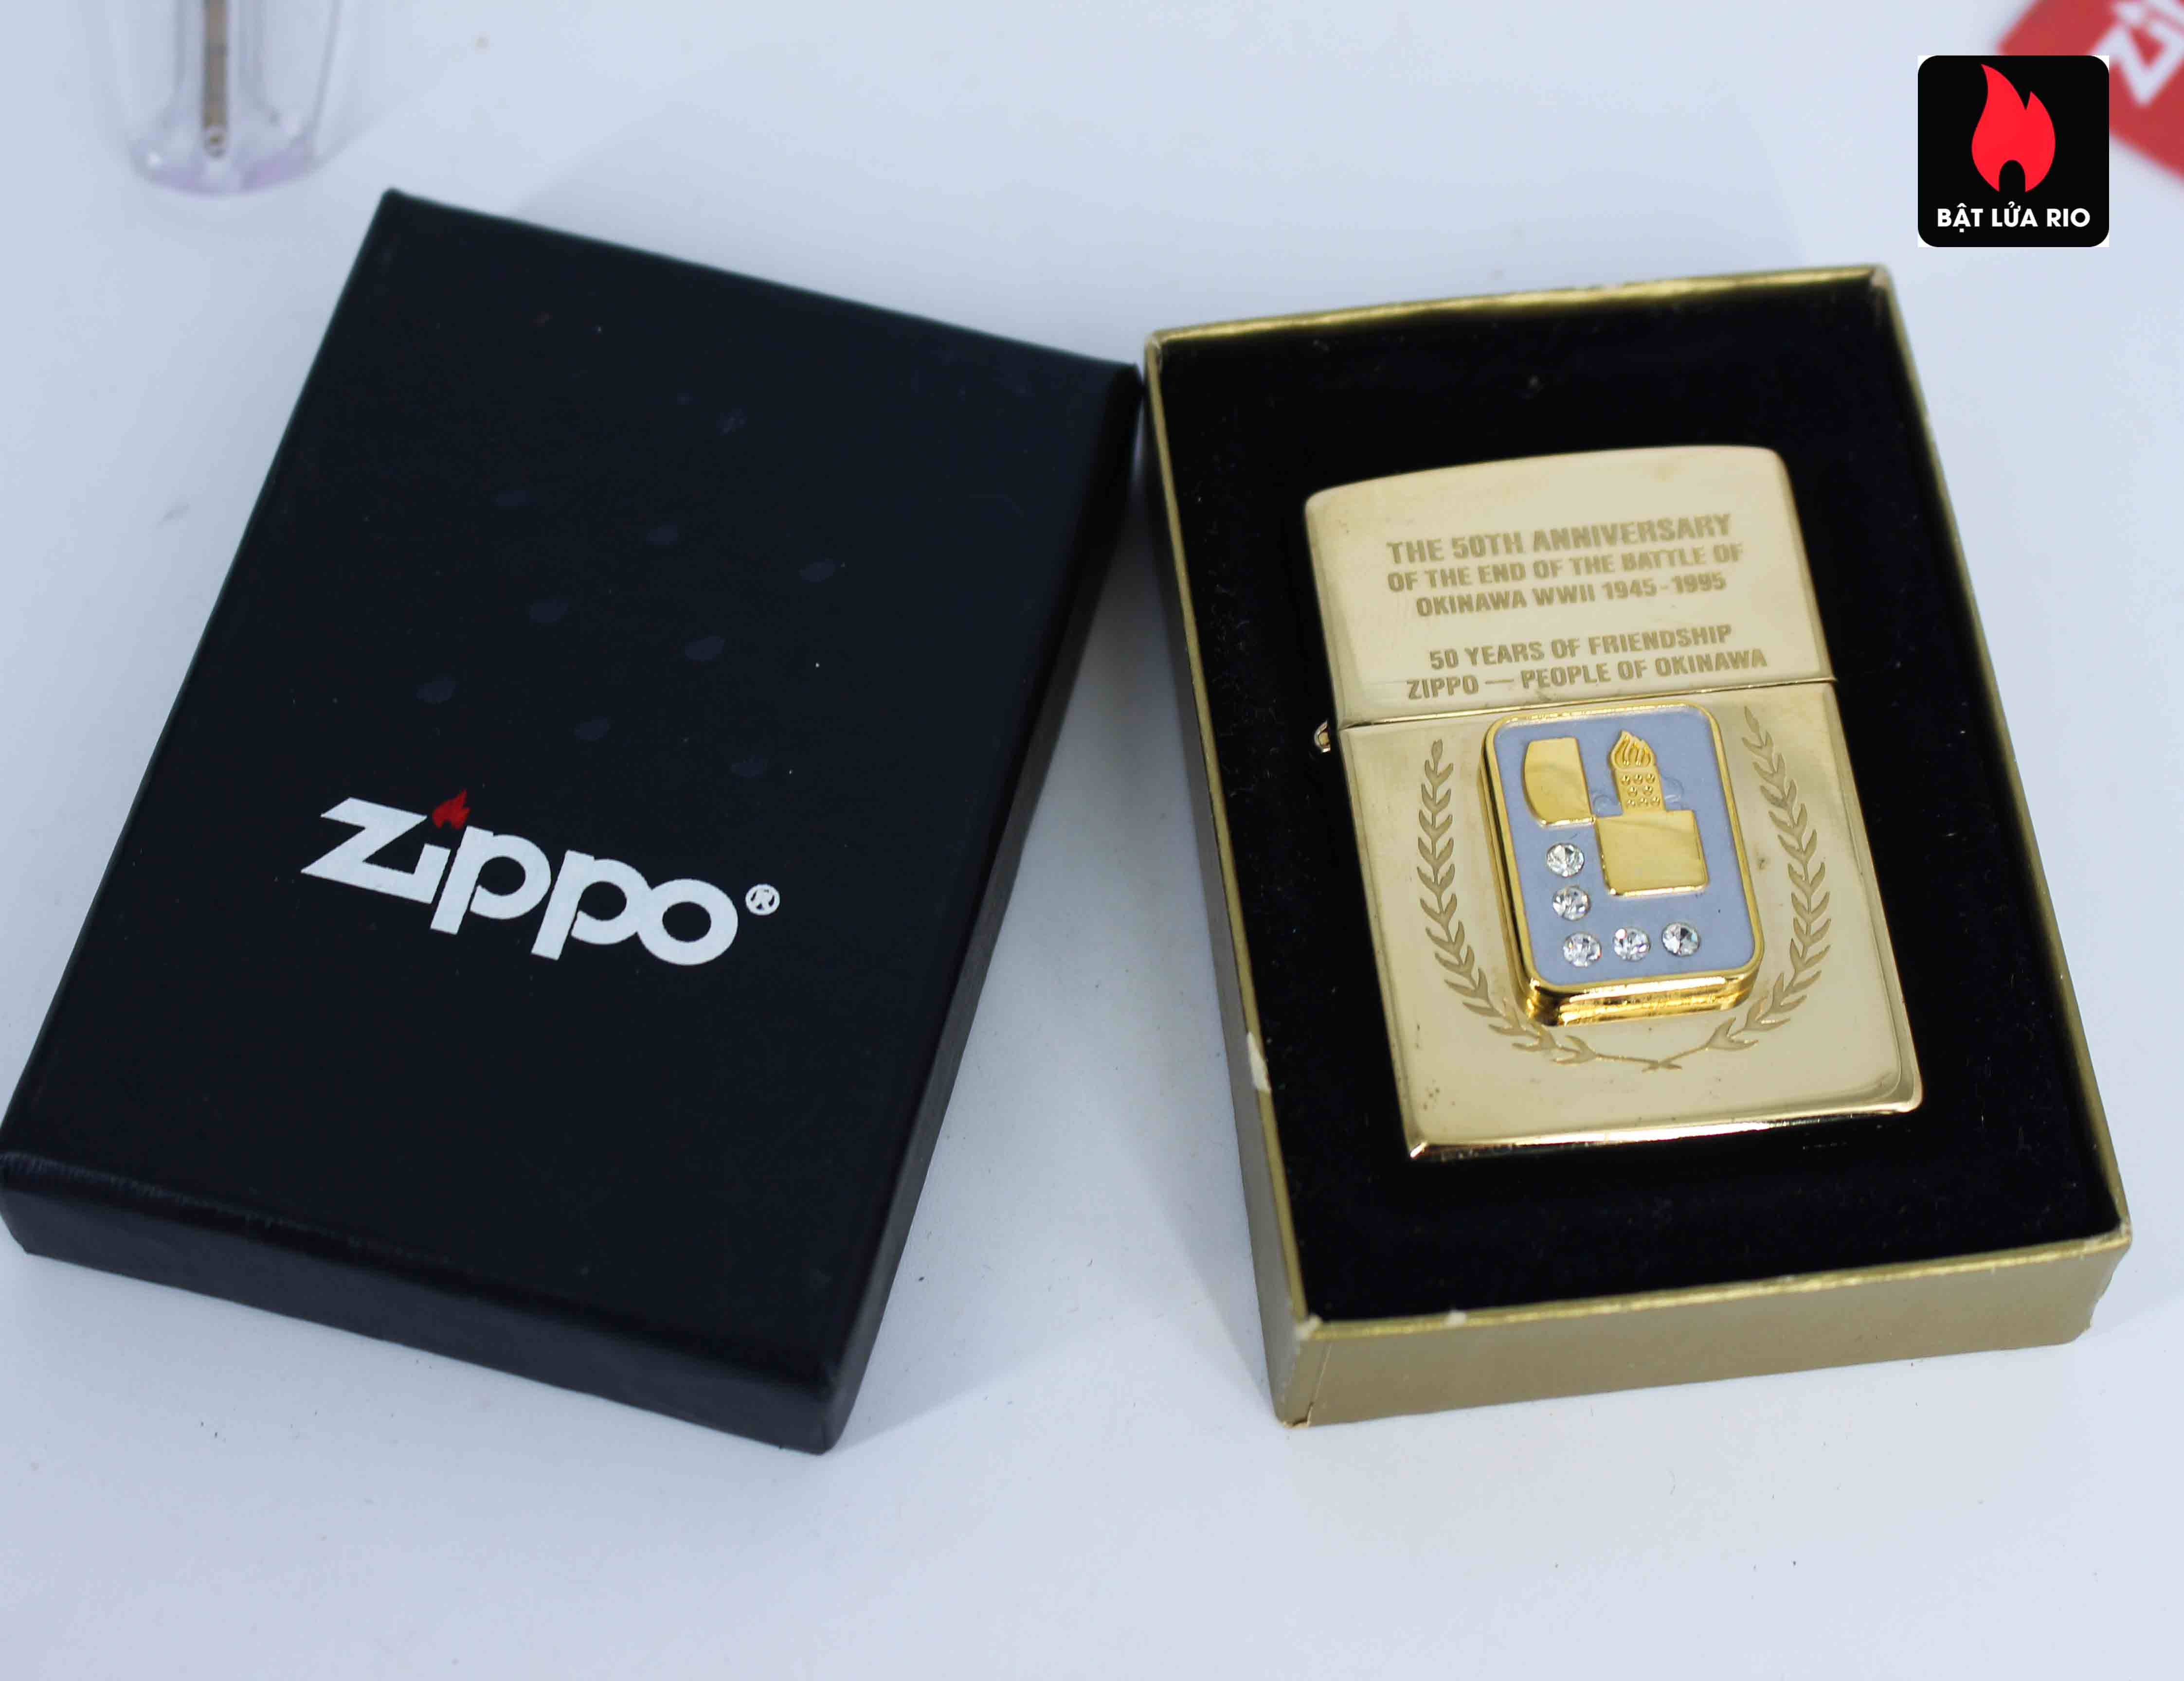 Zippo La Mã 1995 - 50th Anniversary Of The And Of The Battle Of Okinawa WWII 1945-1995 3